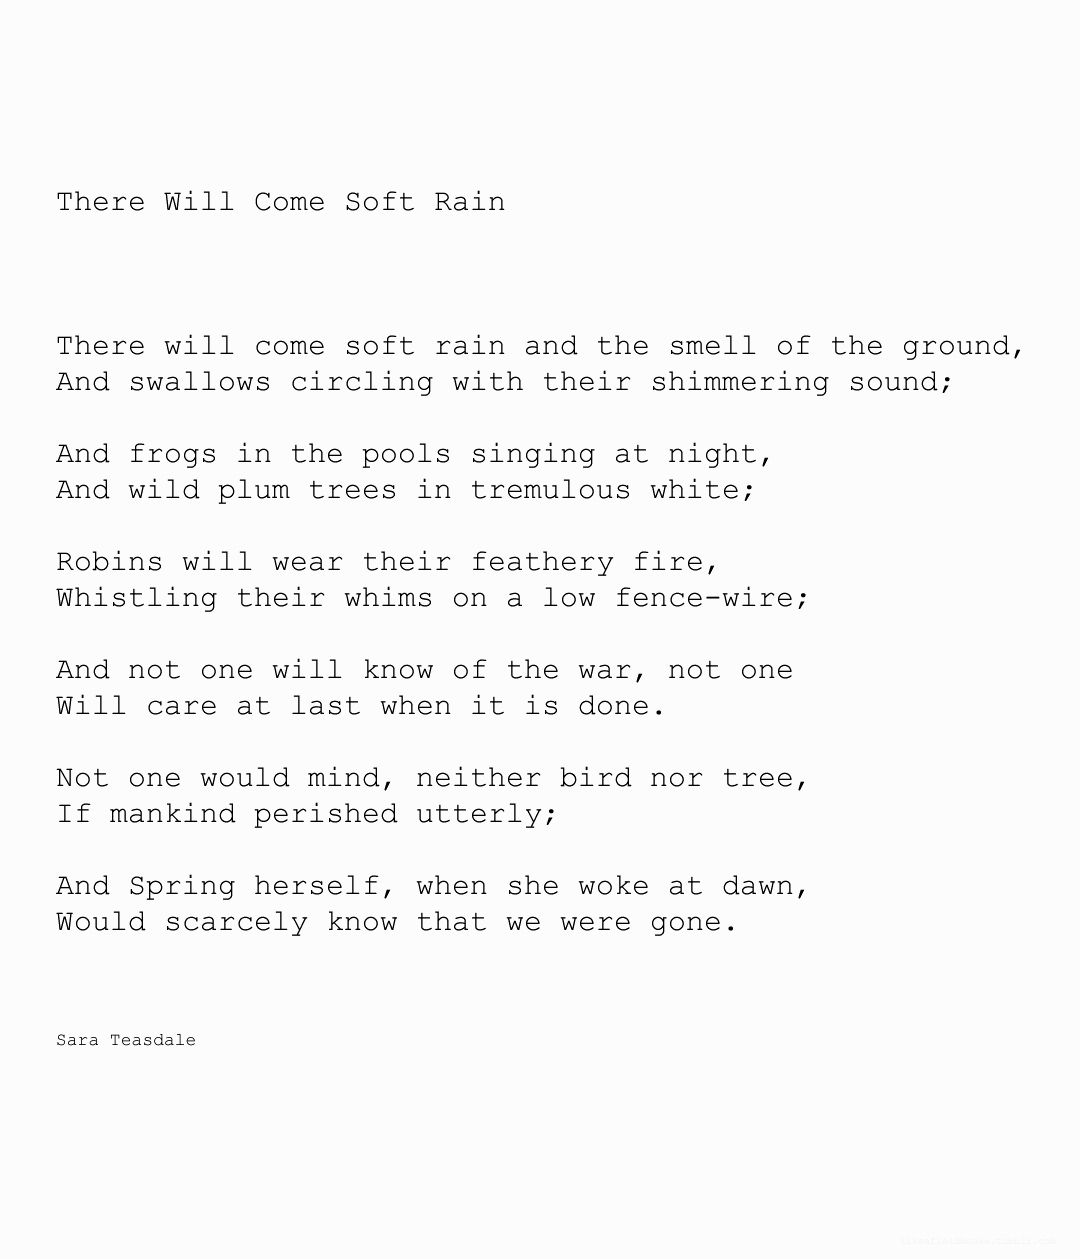 sara teasdale there will come soft rains analysis